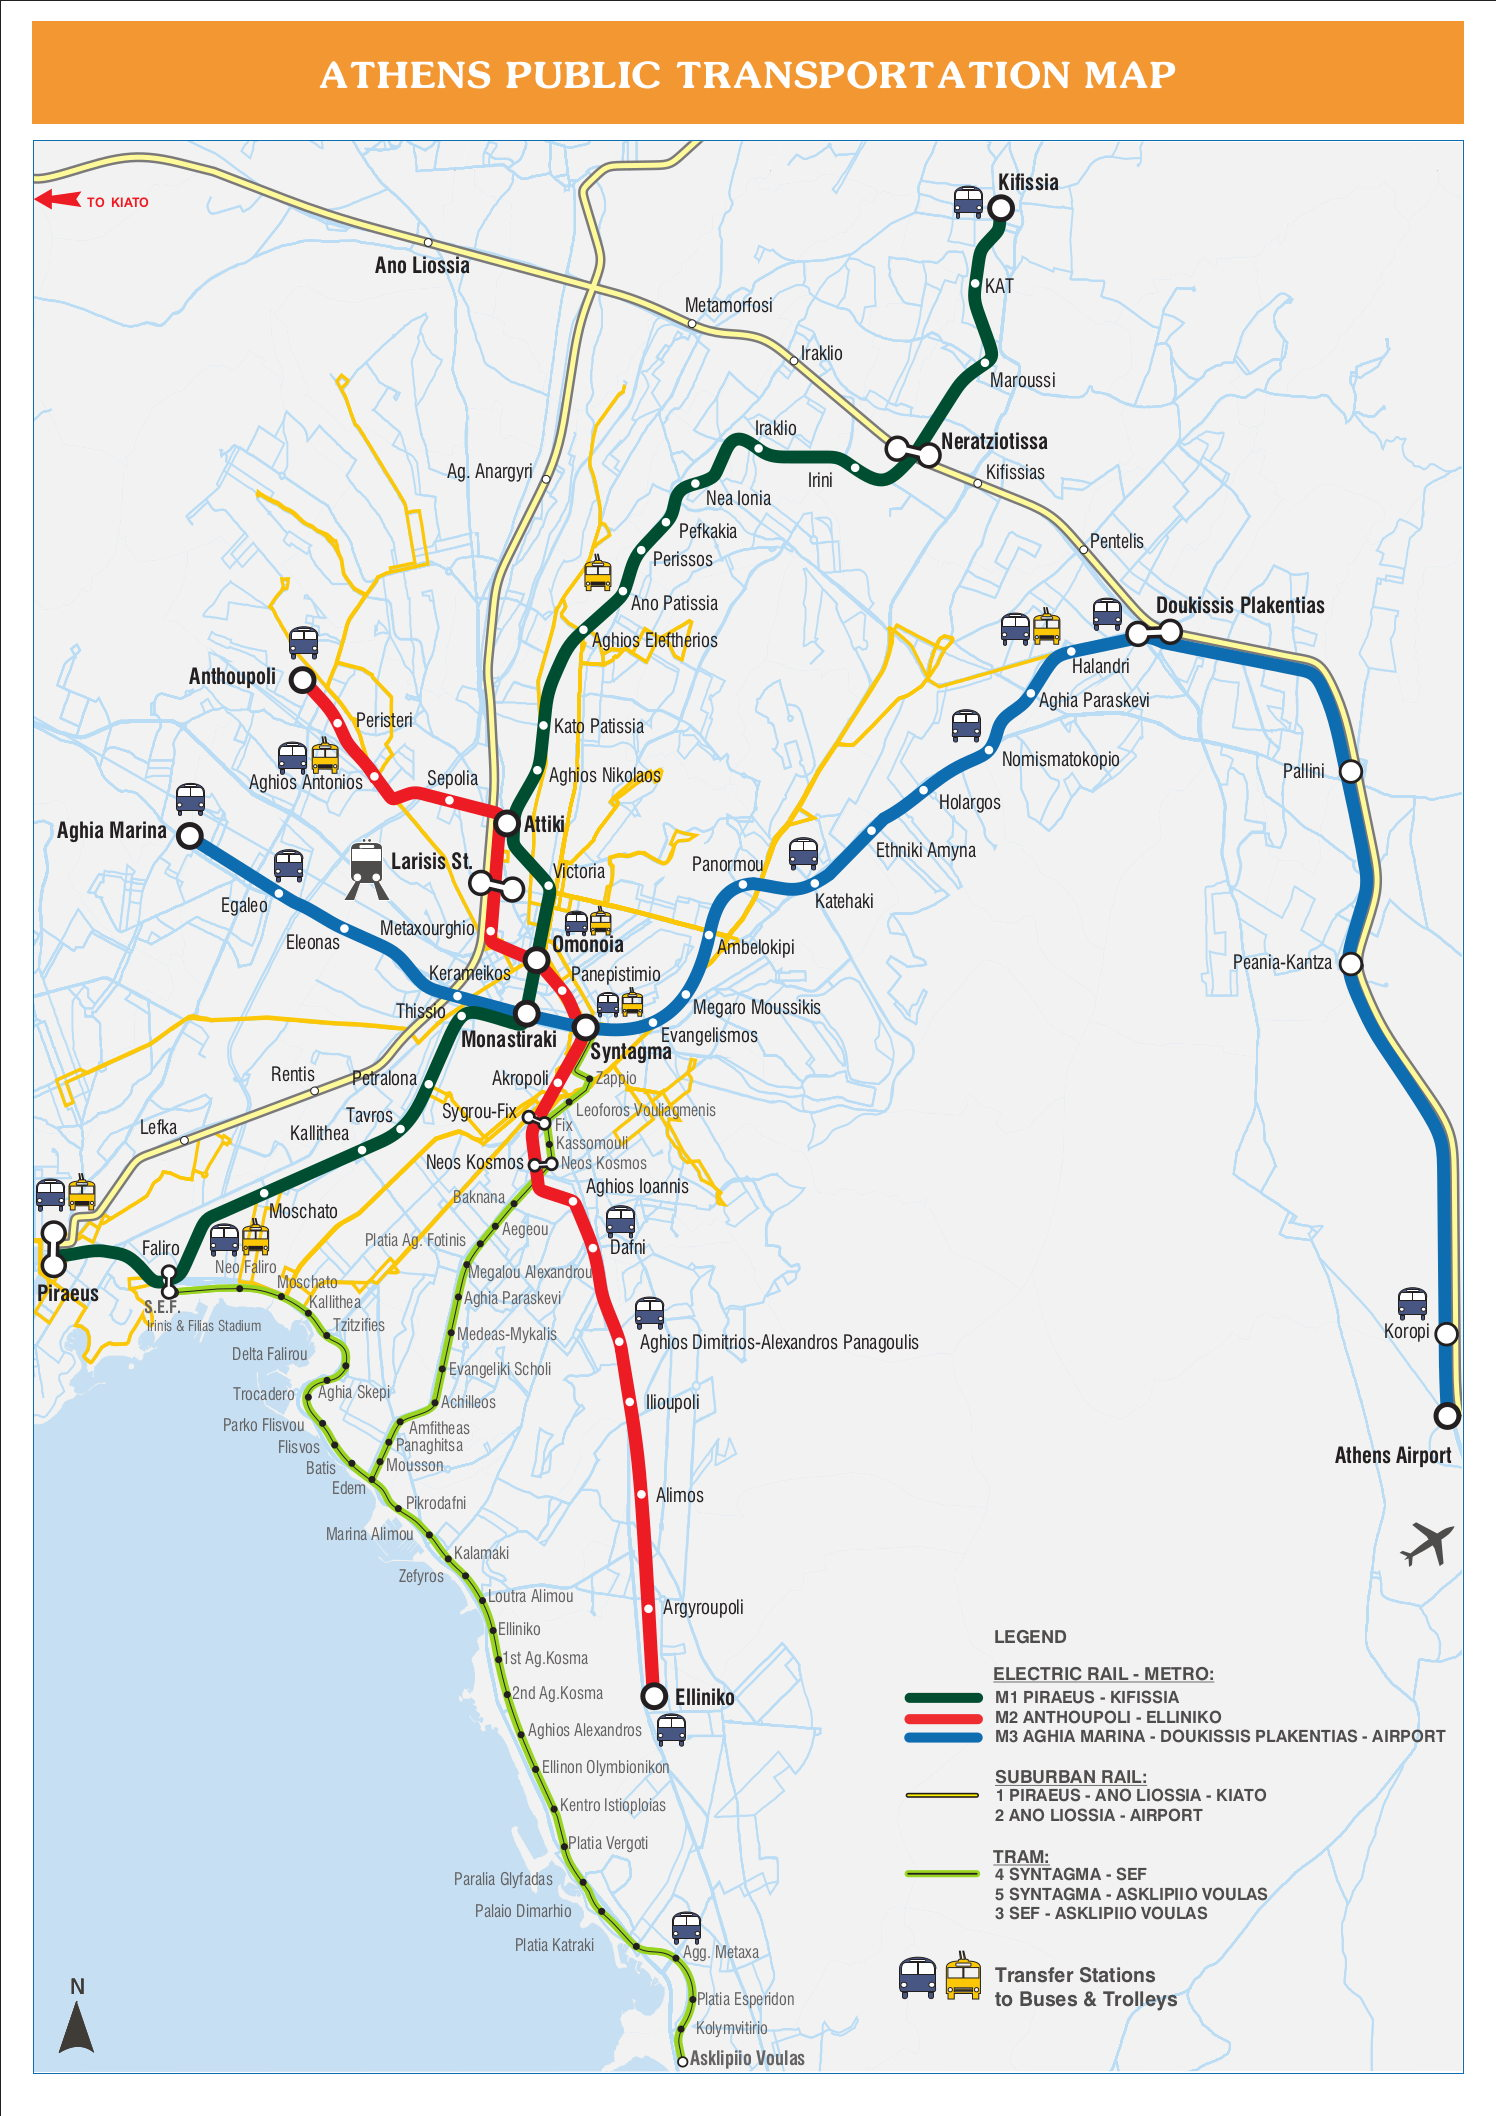 Subway Map Athens Greece.City Guide To Athens Greece Part 1 Public Transportation